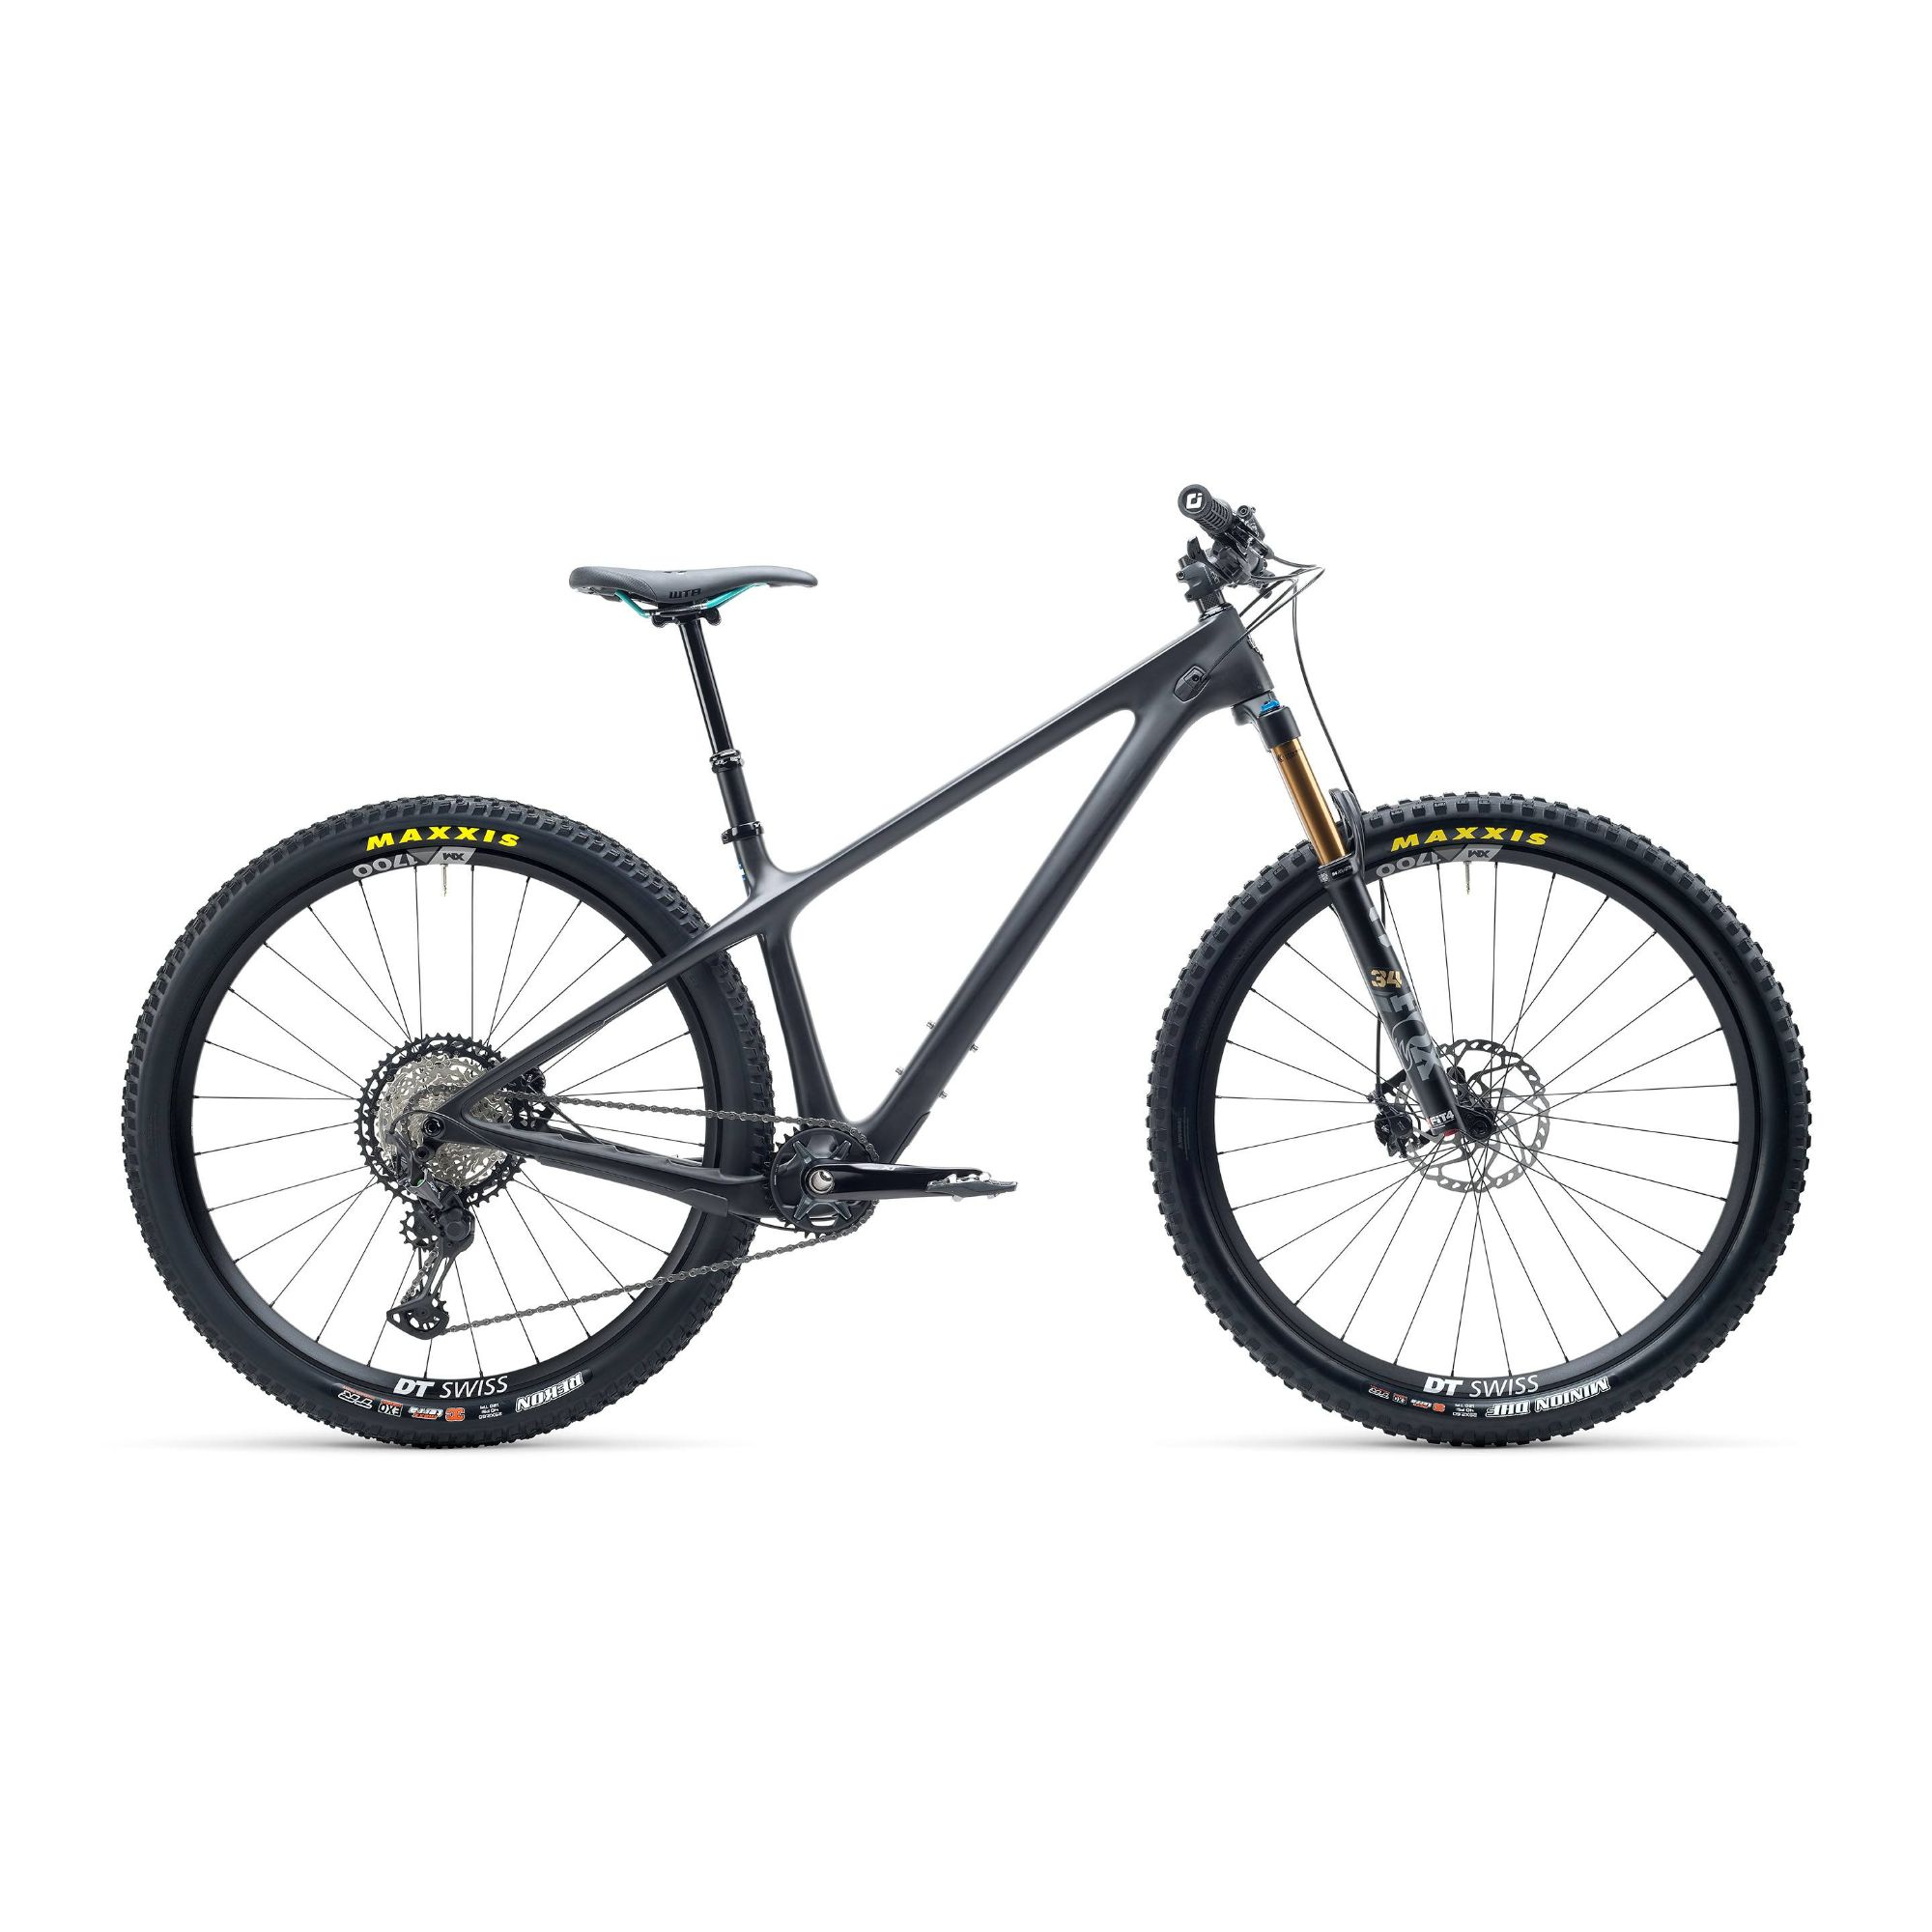 Yeti ARC T Series T1 29er XT Carbon Mountain Bike 2021 Raw/Grey